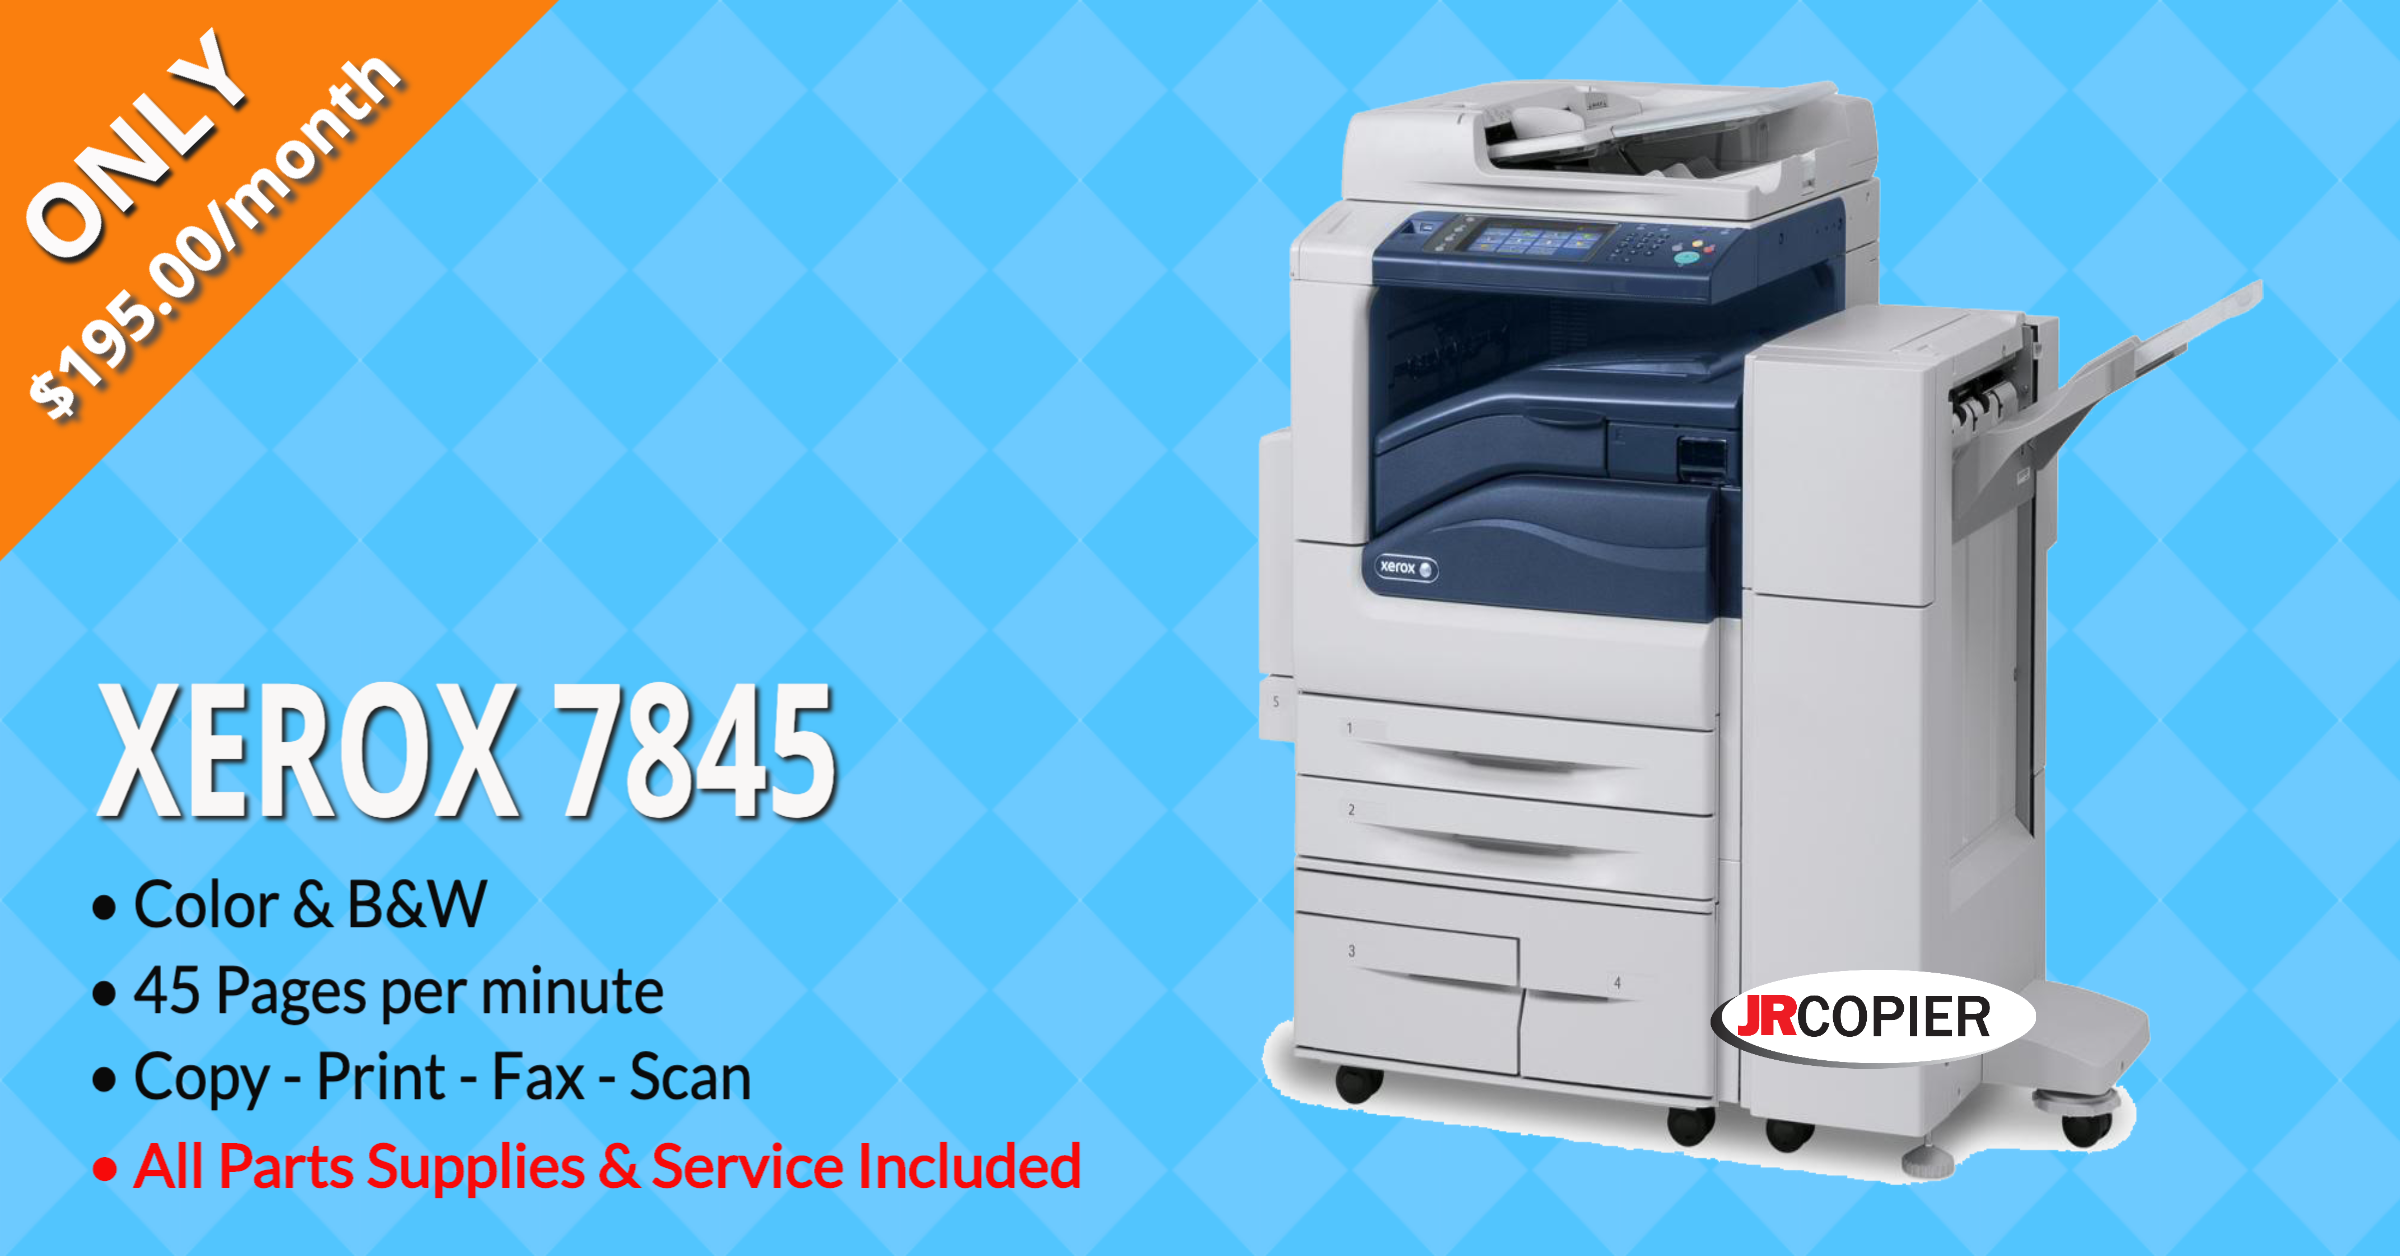 Printer Rental Services 28701, 28787, 28804, 28806